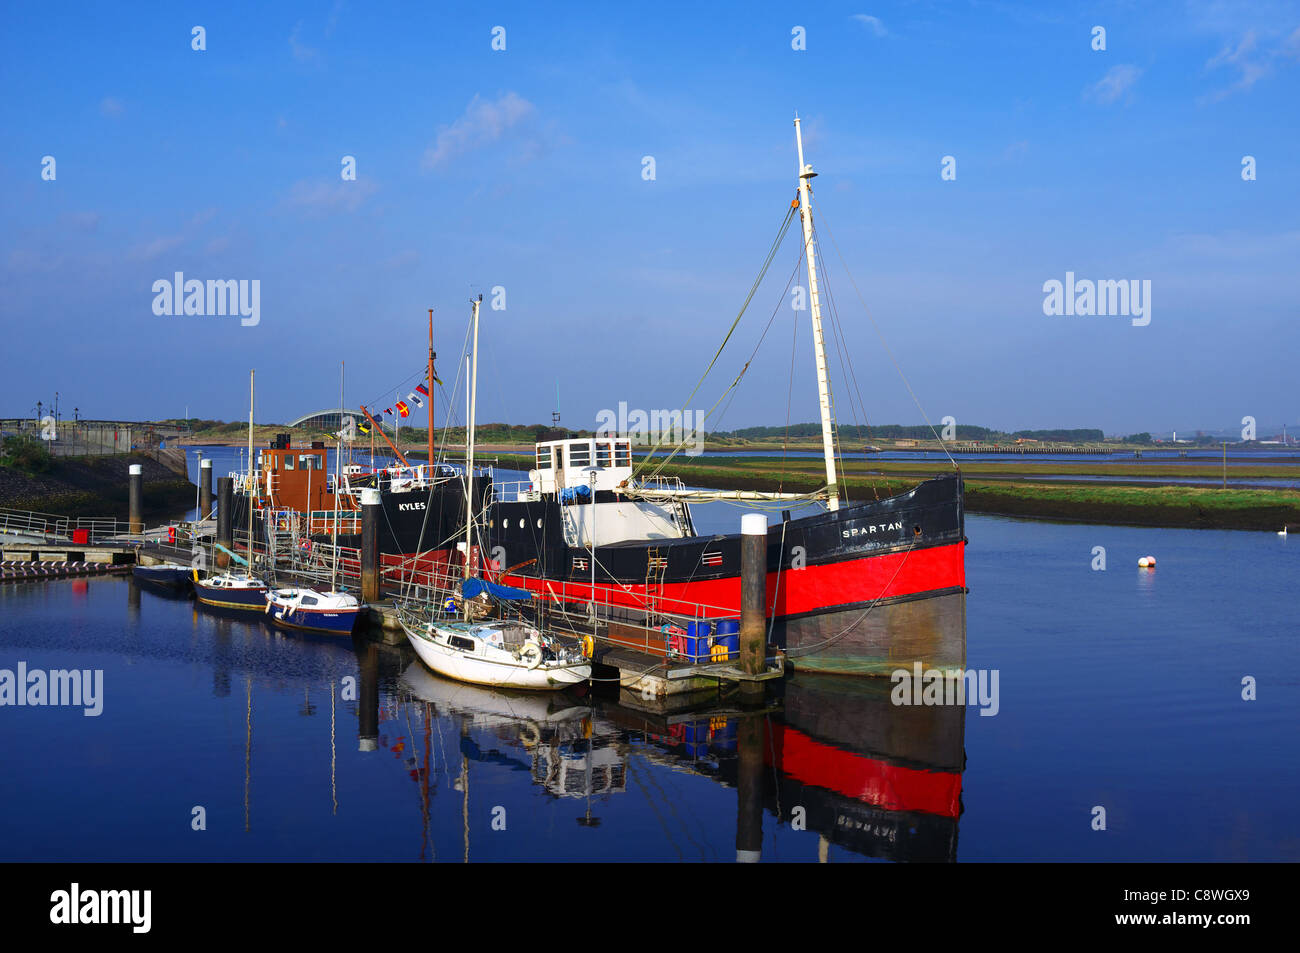 """Irvine harbour with the """"Spartan"""" tug boat, berthed and decommissioned. Ayrshire, Great Britain Stock Photo"""